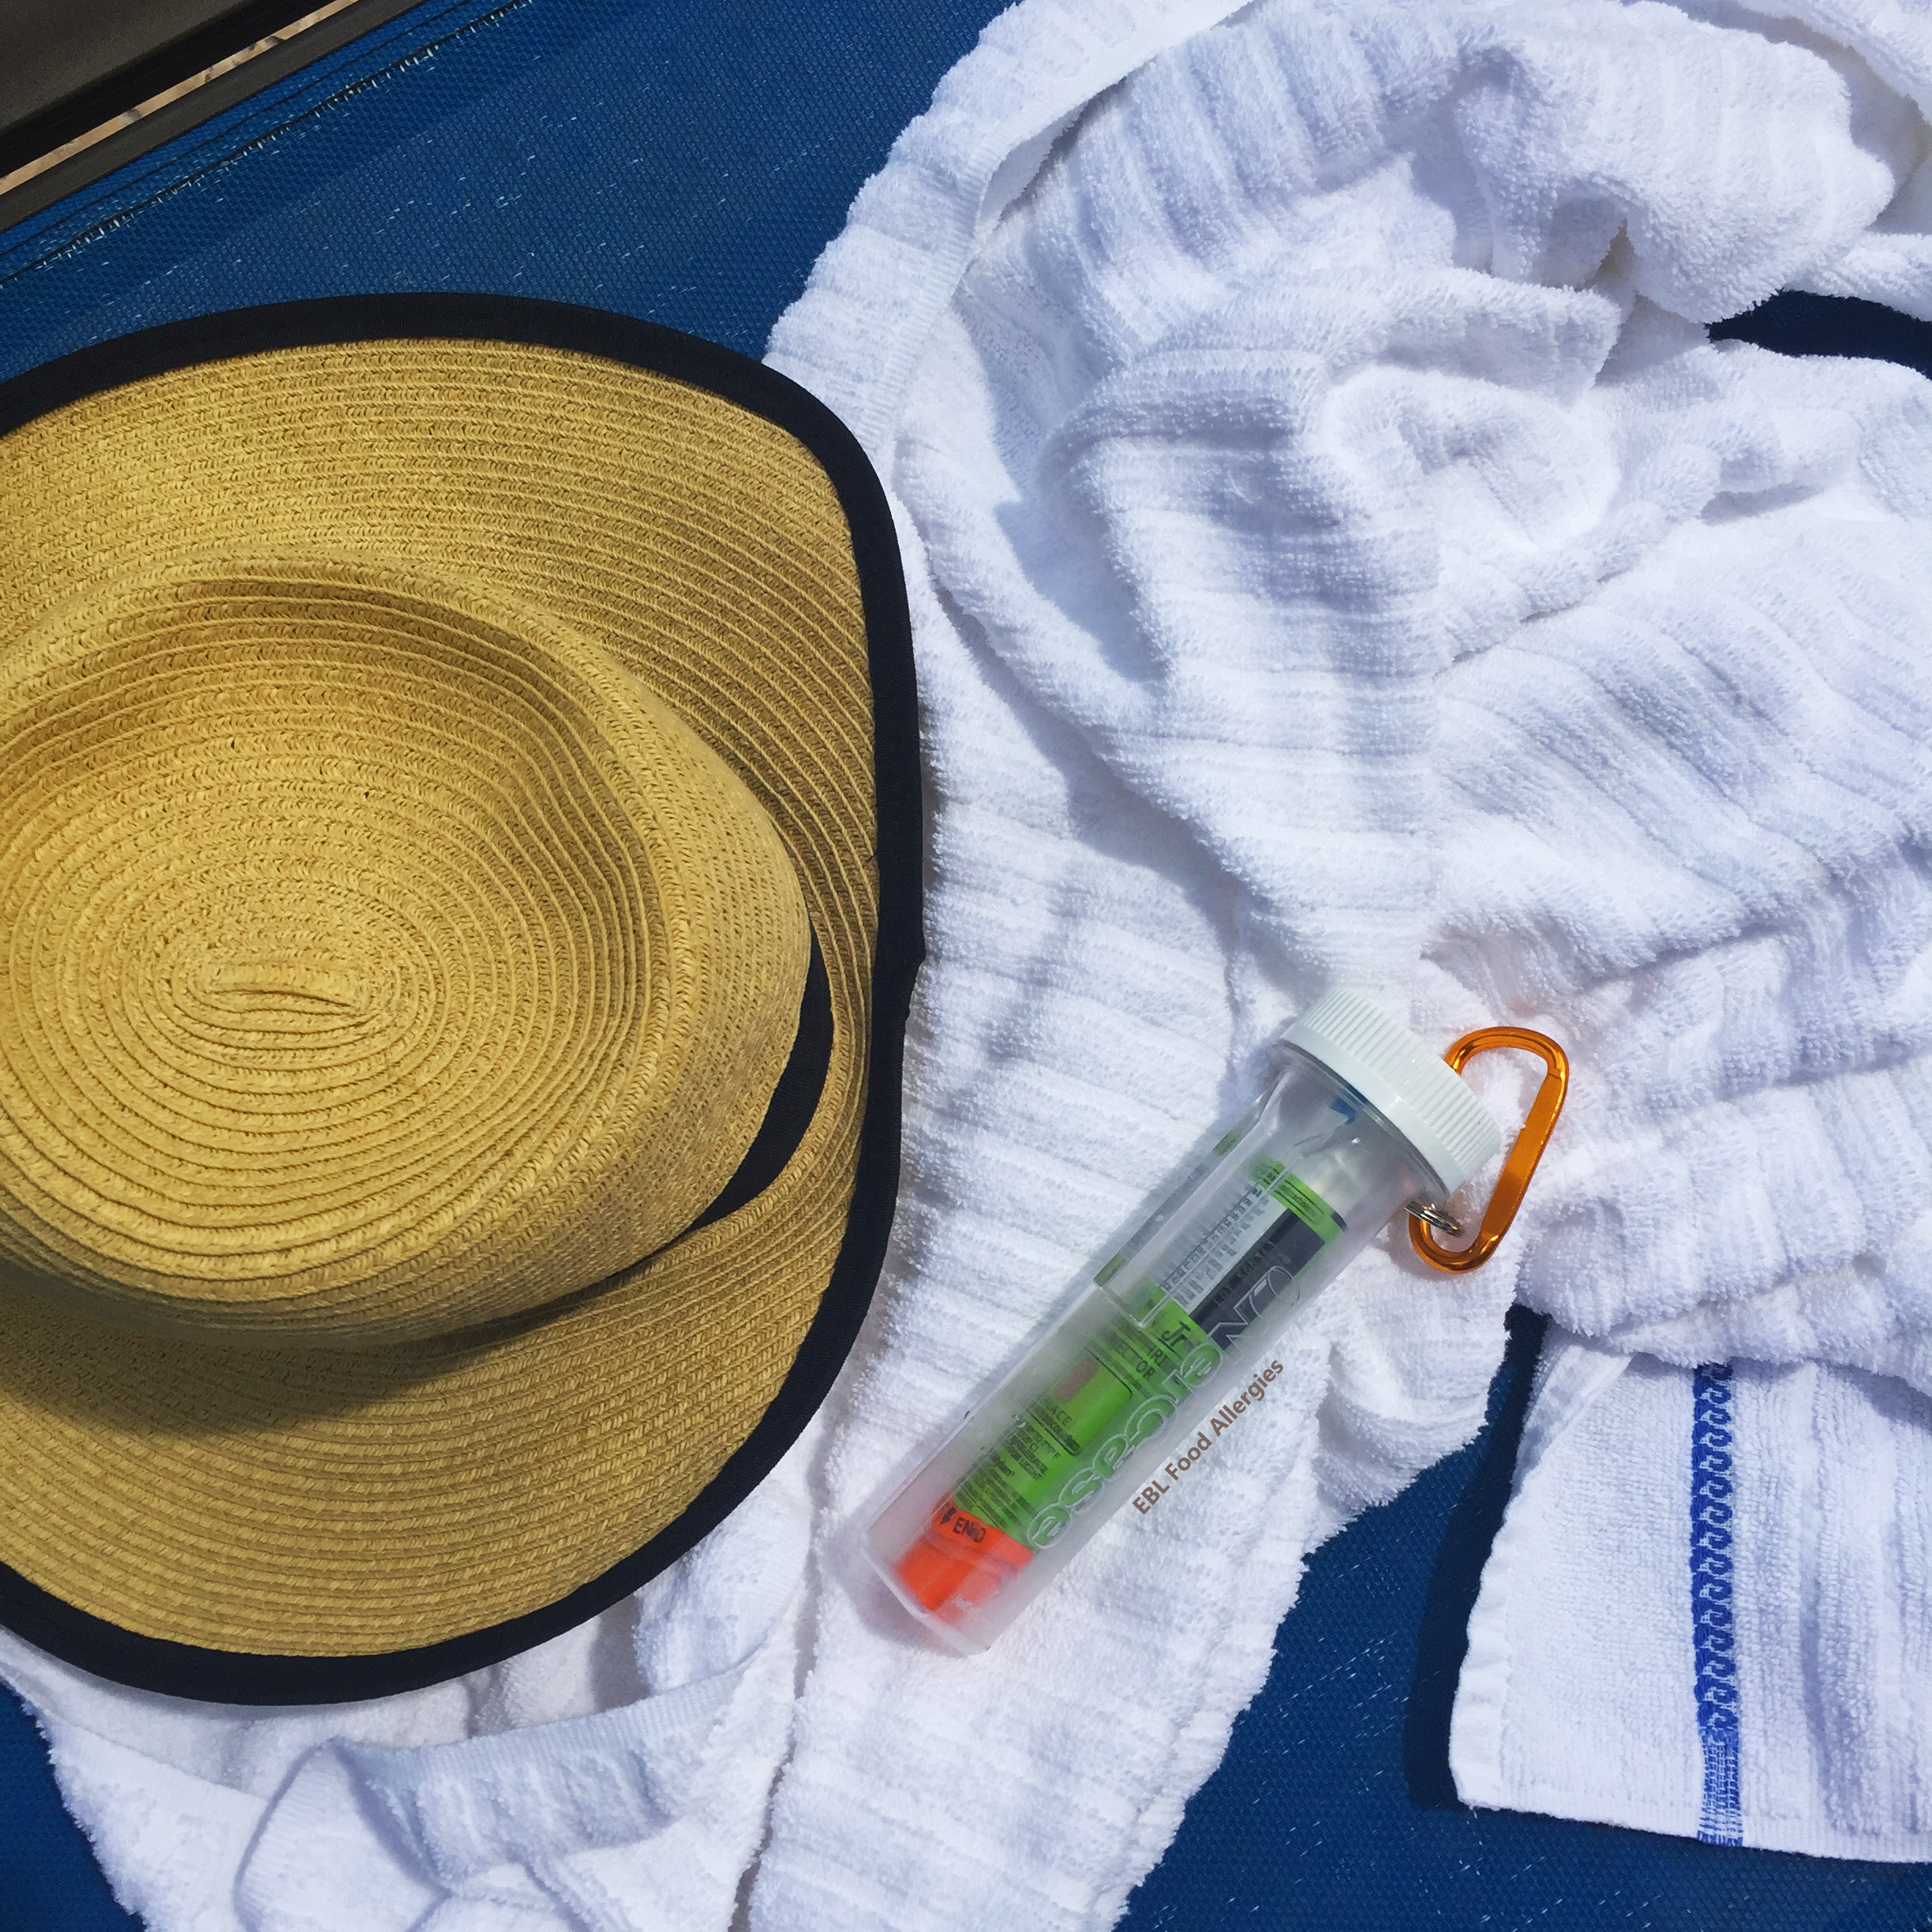 Waterproof EpiPen Case Review